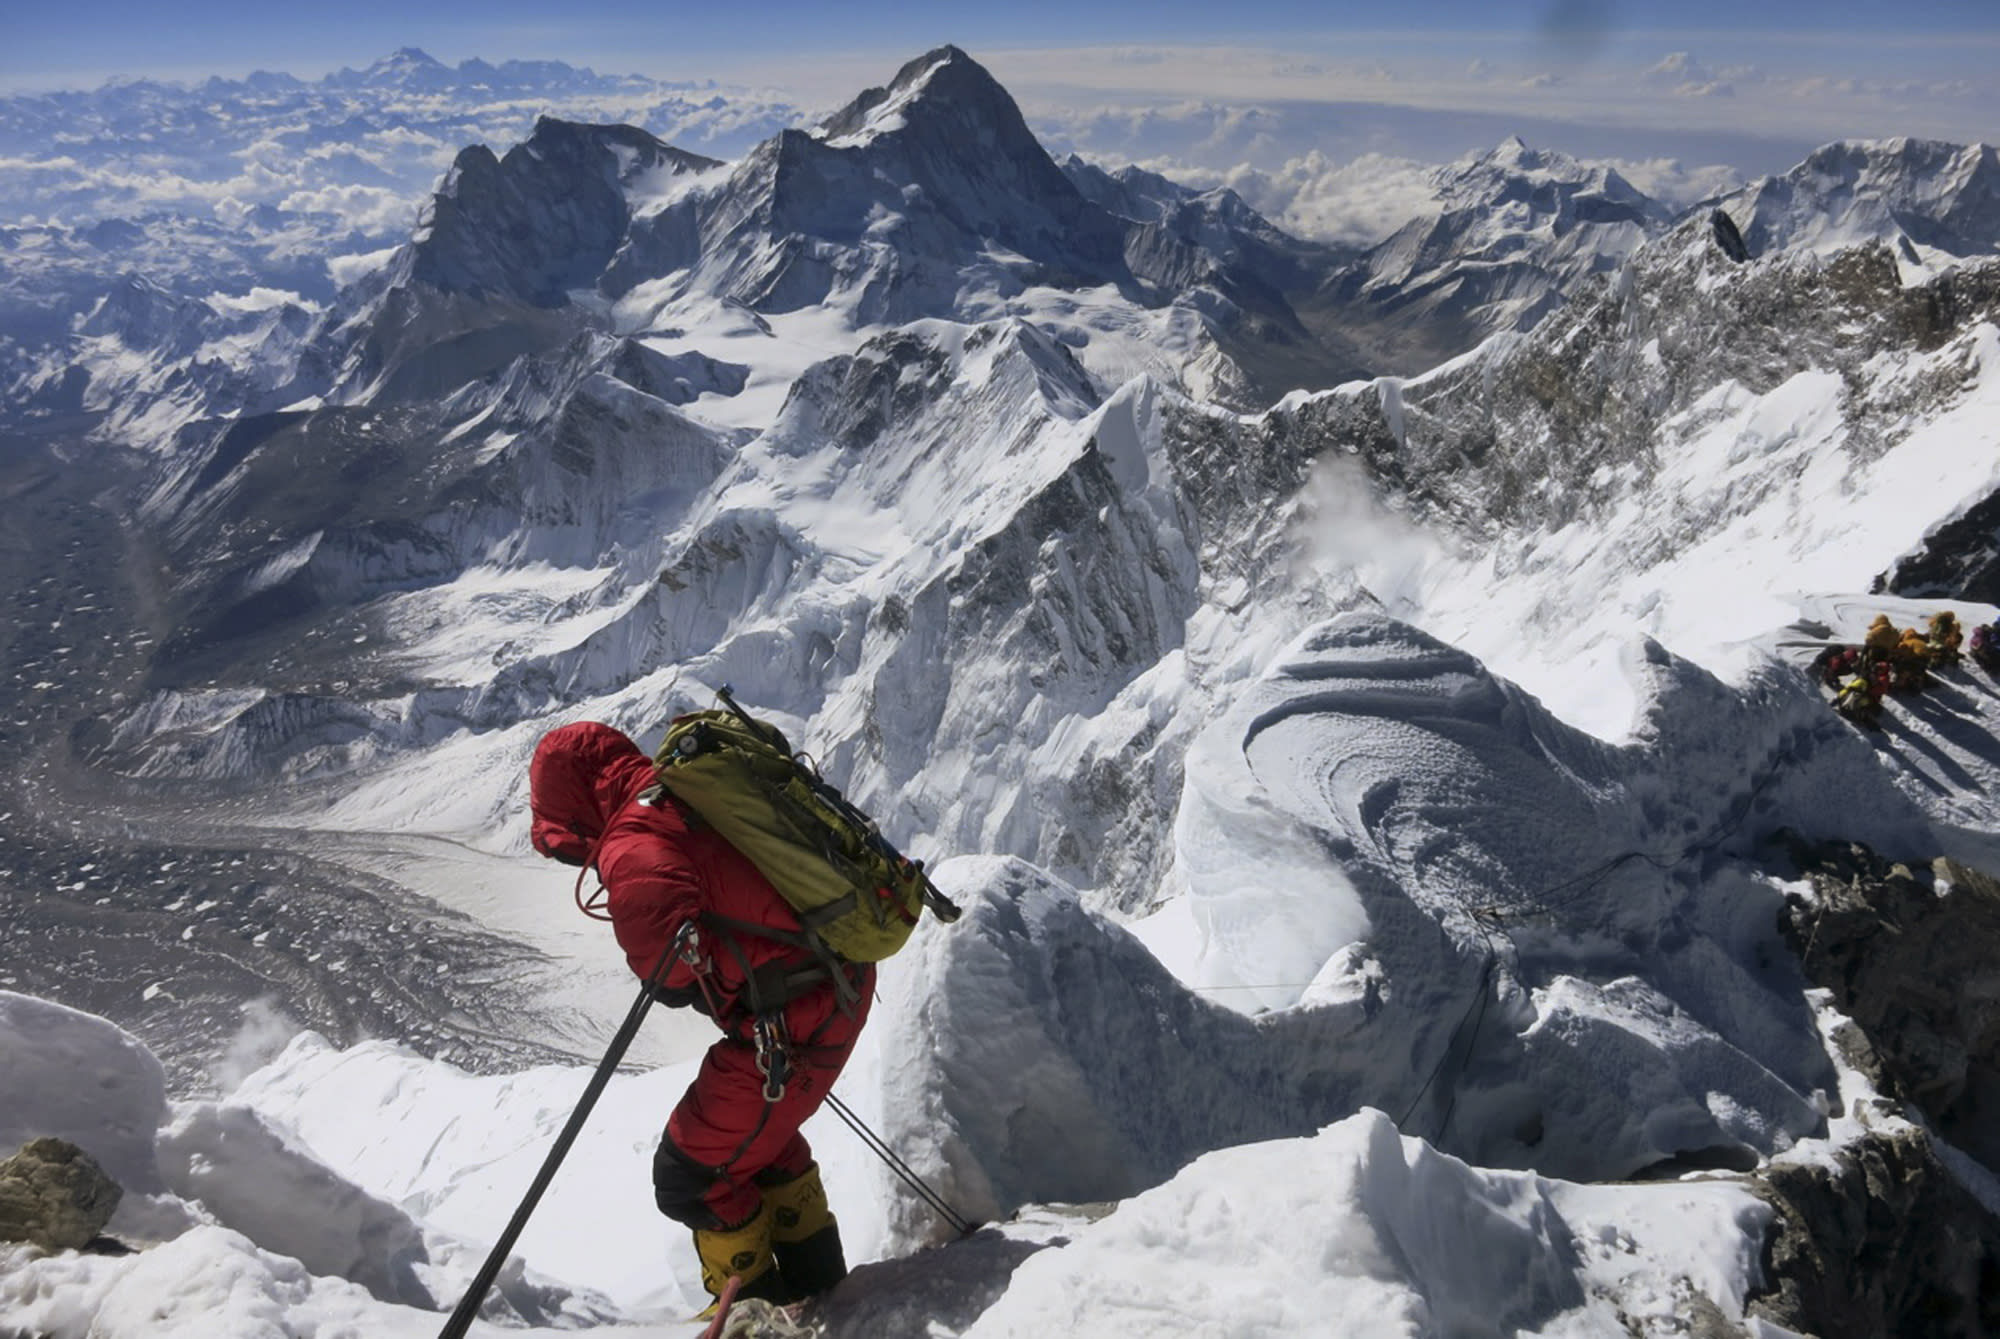 mountain climbing expeditions challenged - HD2000×1339